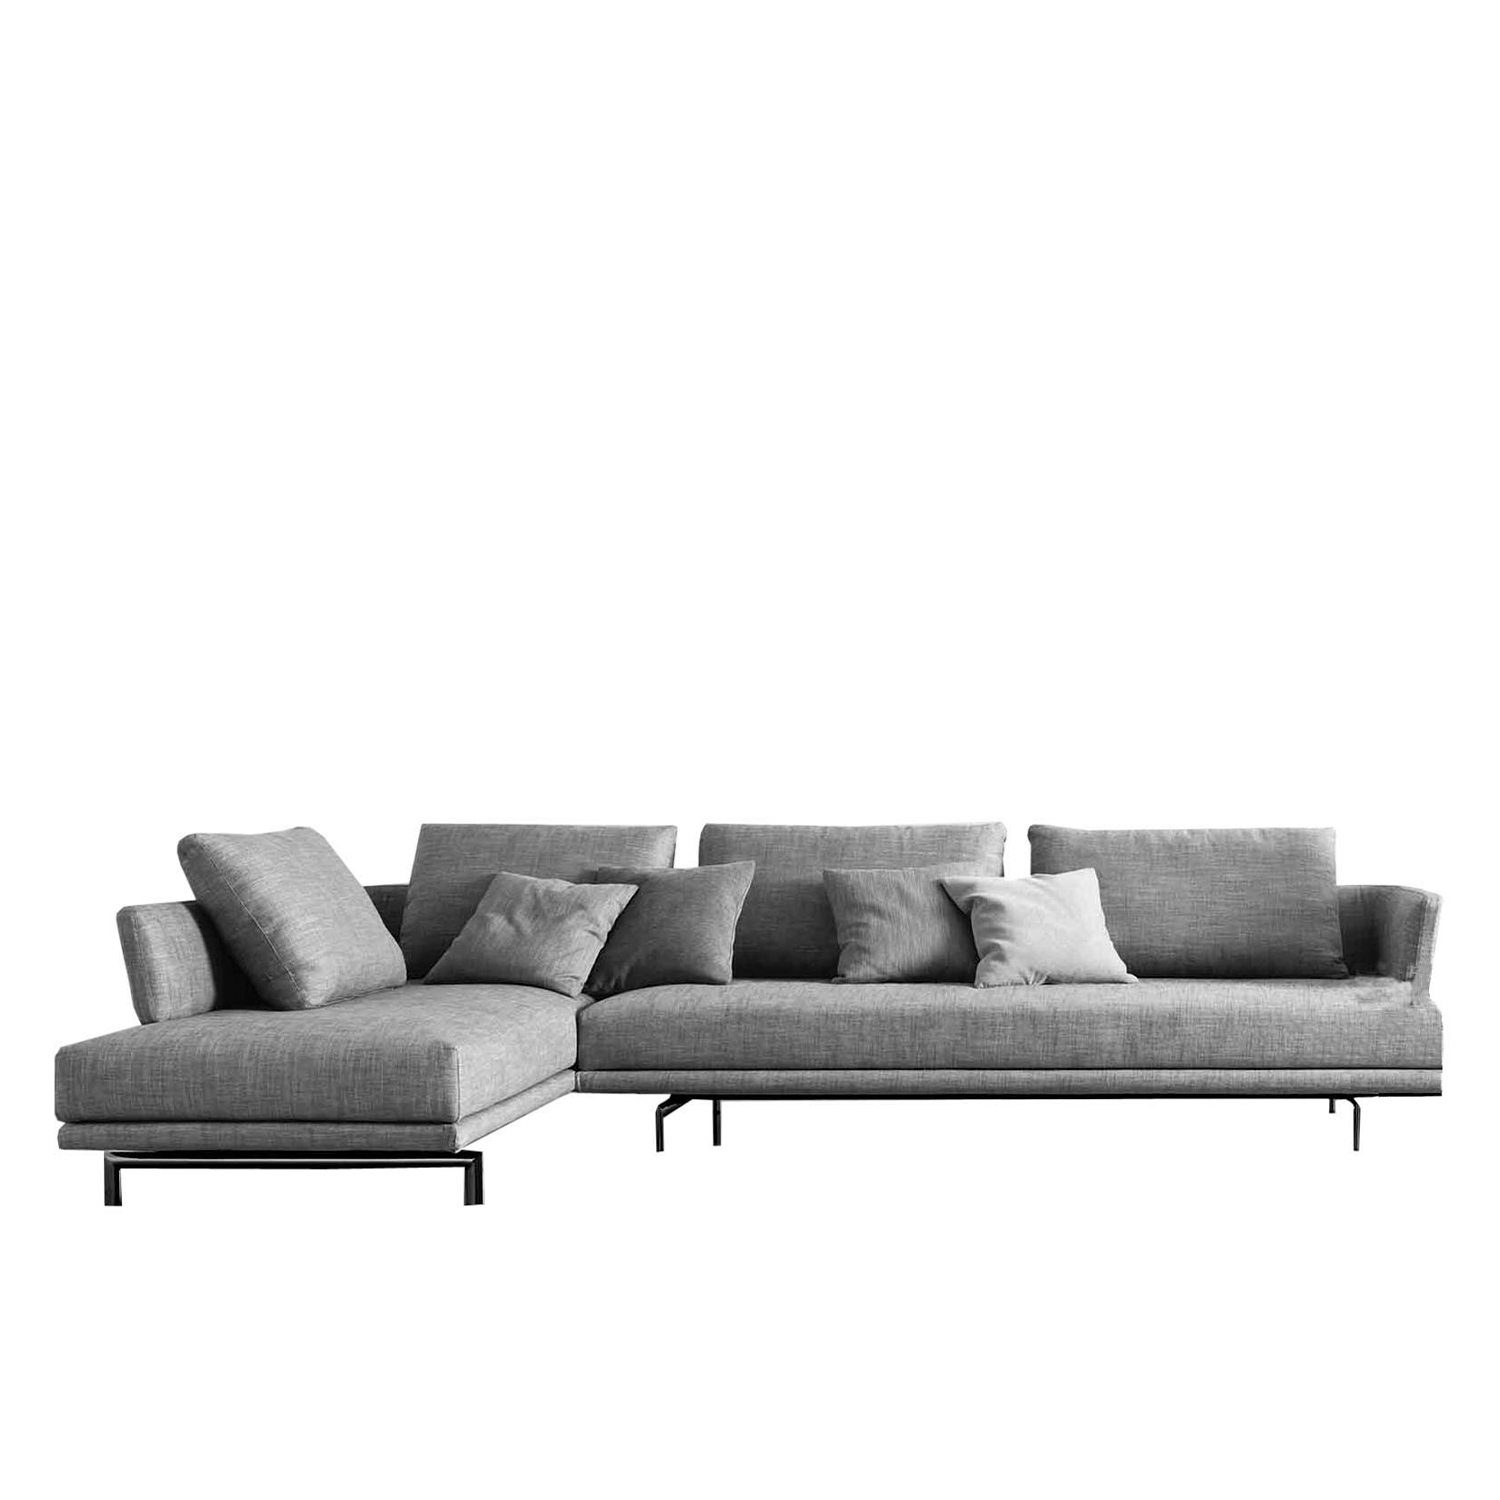 Quinta Strada Modular Sofa - Launched in 1996, the Quinta Strada seating range represented a pioneering design in modern style.‎ Streamlined yet modularly flexible, the range has since then been restyled and re-produced with a sensitivity that is mindful of the new contemporary language.‎ The black chrome finish of the feet, the thinner joining clamps as well as the lightness of the base and back support are elegant touches aligned with modern lifestyle.‎ The various elements in the Quinta Strada collection allow for numerous configurations and particularly interesting compositions even in corner situations.‎